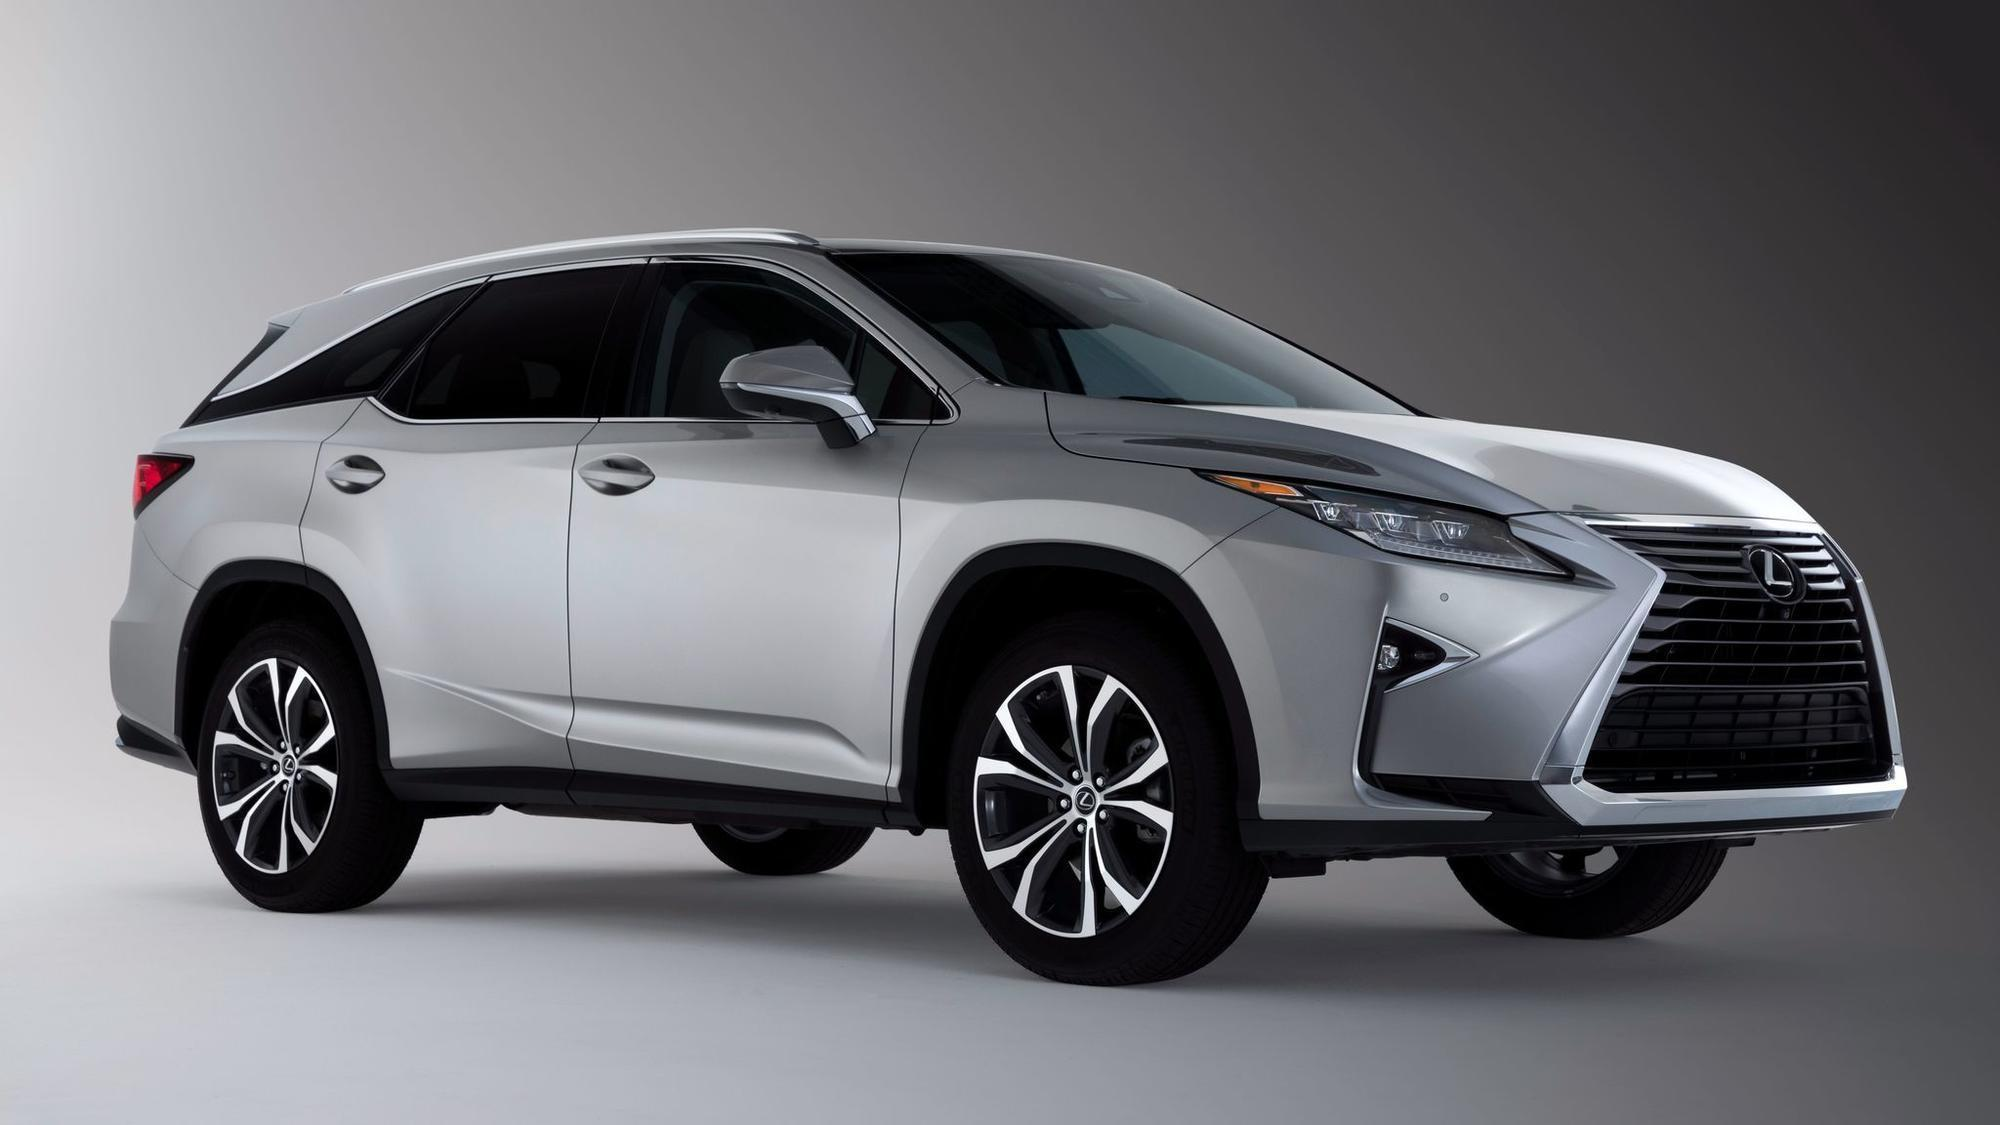 L A Auto Show 2017 Lexus rolls out 2018 RX and LX luxury SUVs